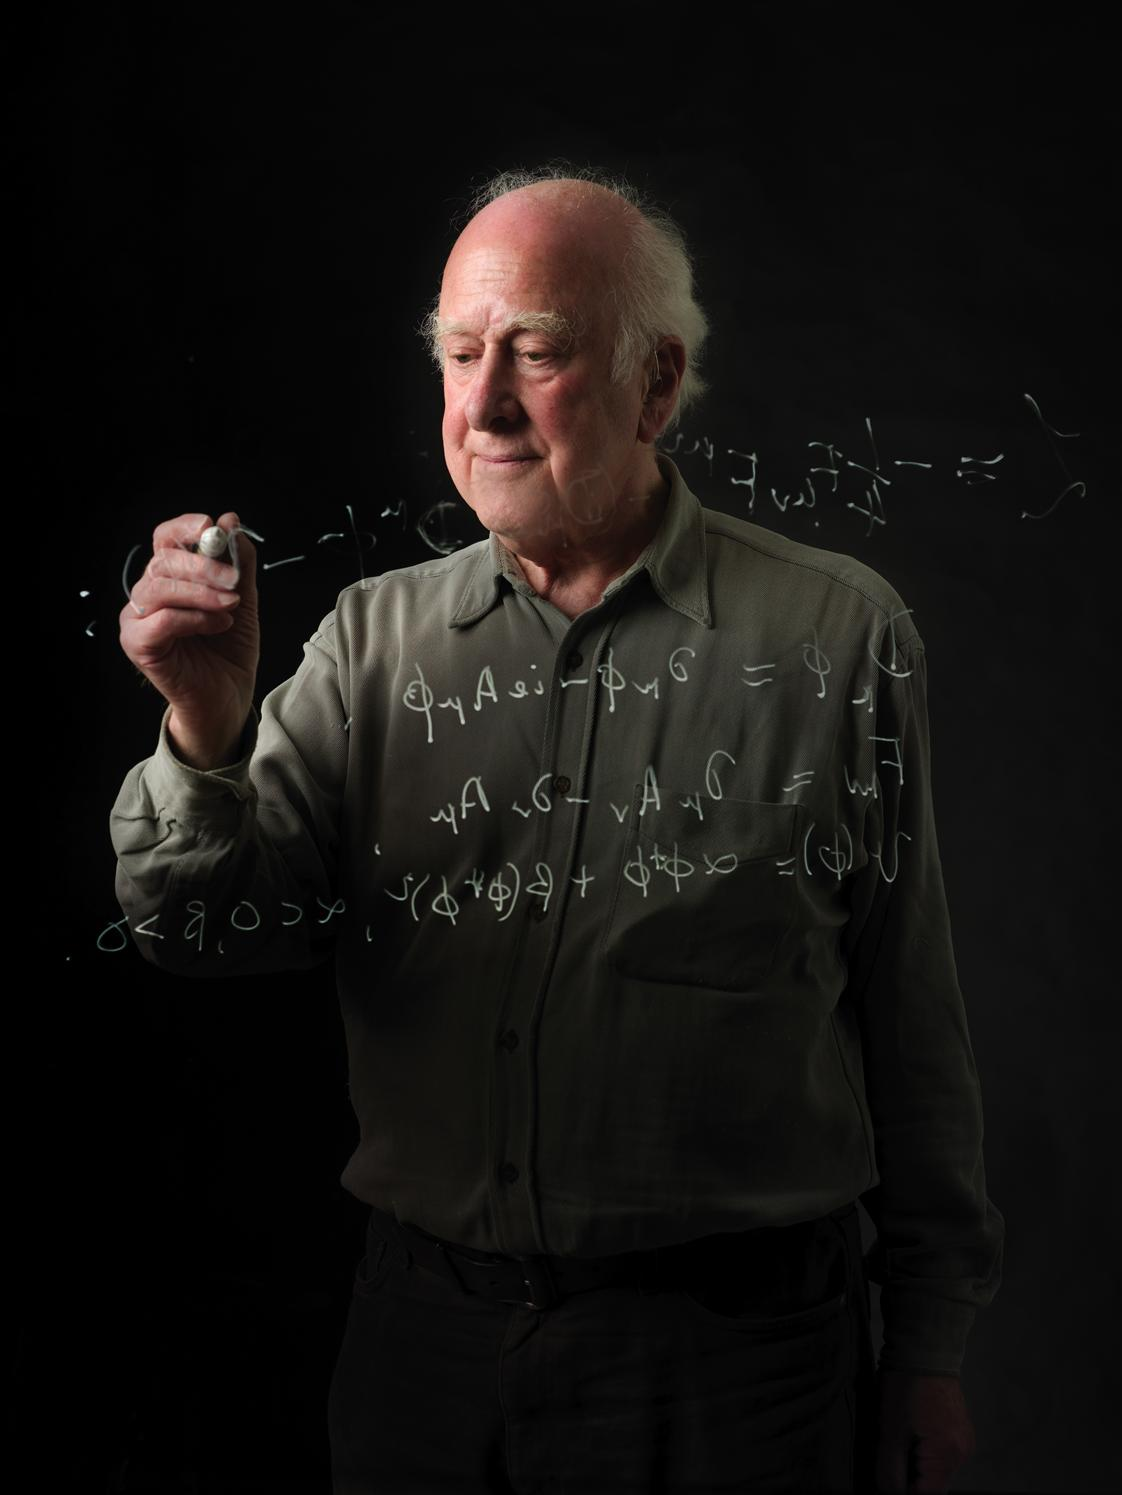 Peter Higgs visits CERN in April 2008